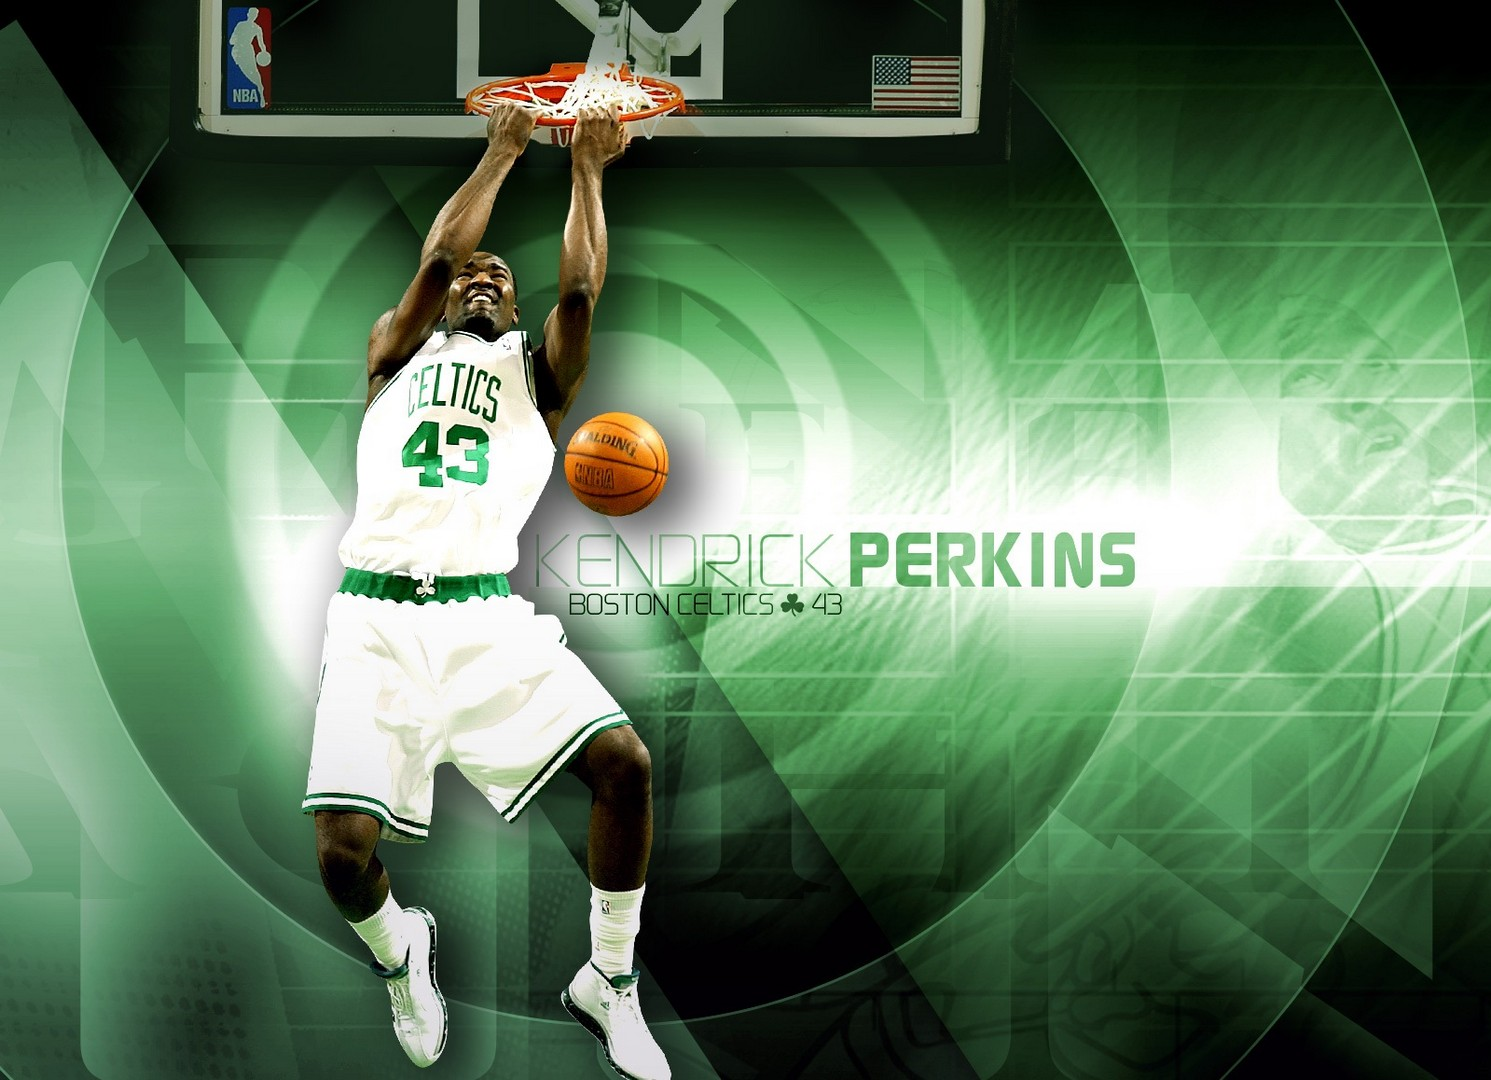 http://1.bp.blogspot.com/-tcRrzm7A70c/Th-Hy_sQtqI/AAAAAAAAHPw/u4HUy6tTx88/s1600/celts_boston_perkins_wallpaper.jpg